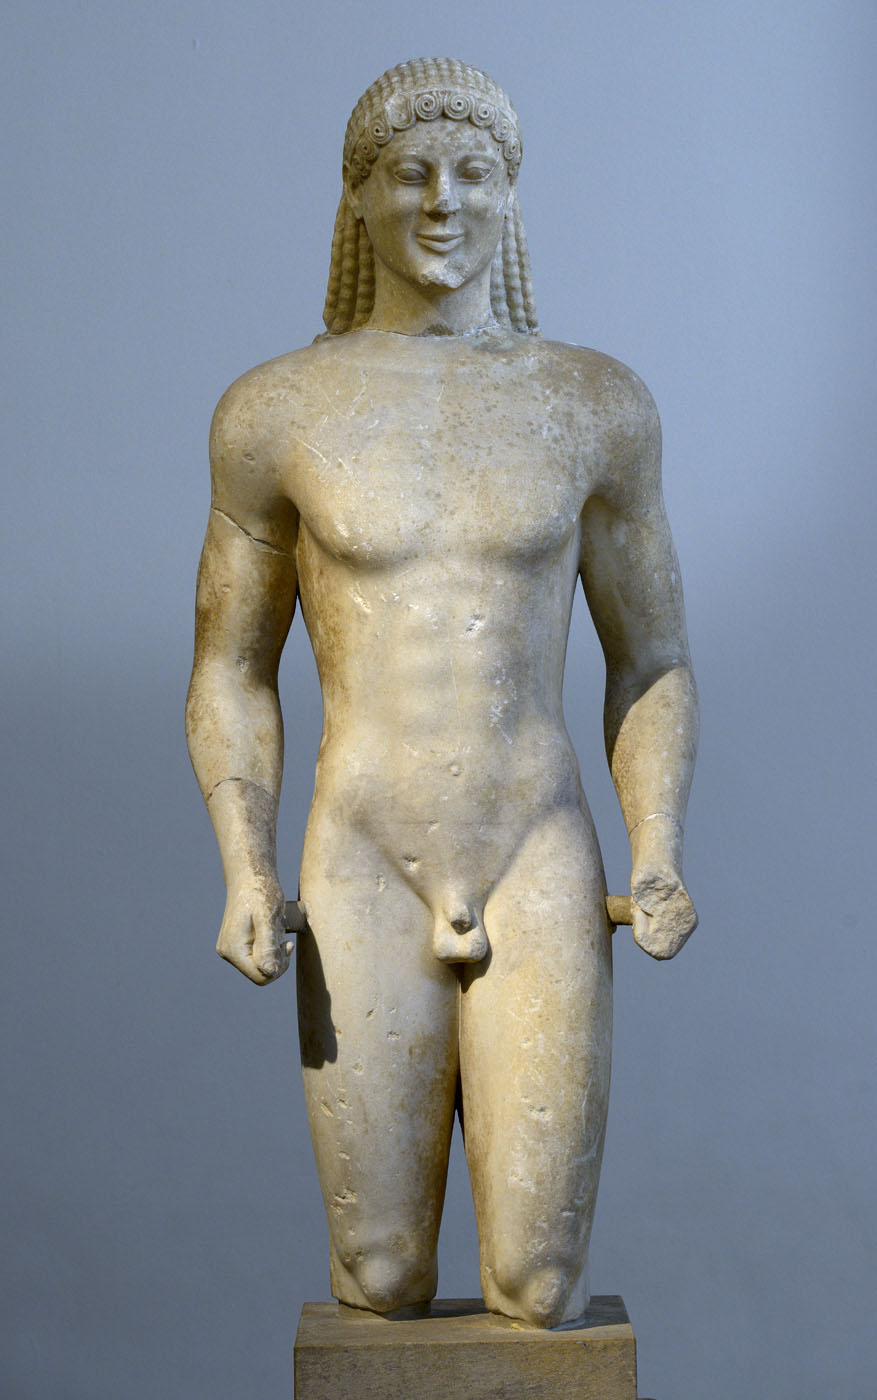 Kouros. Island marble. Ca. 520 BCE. Inv. No. 12+2005. Athens, National Archaeological Museum